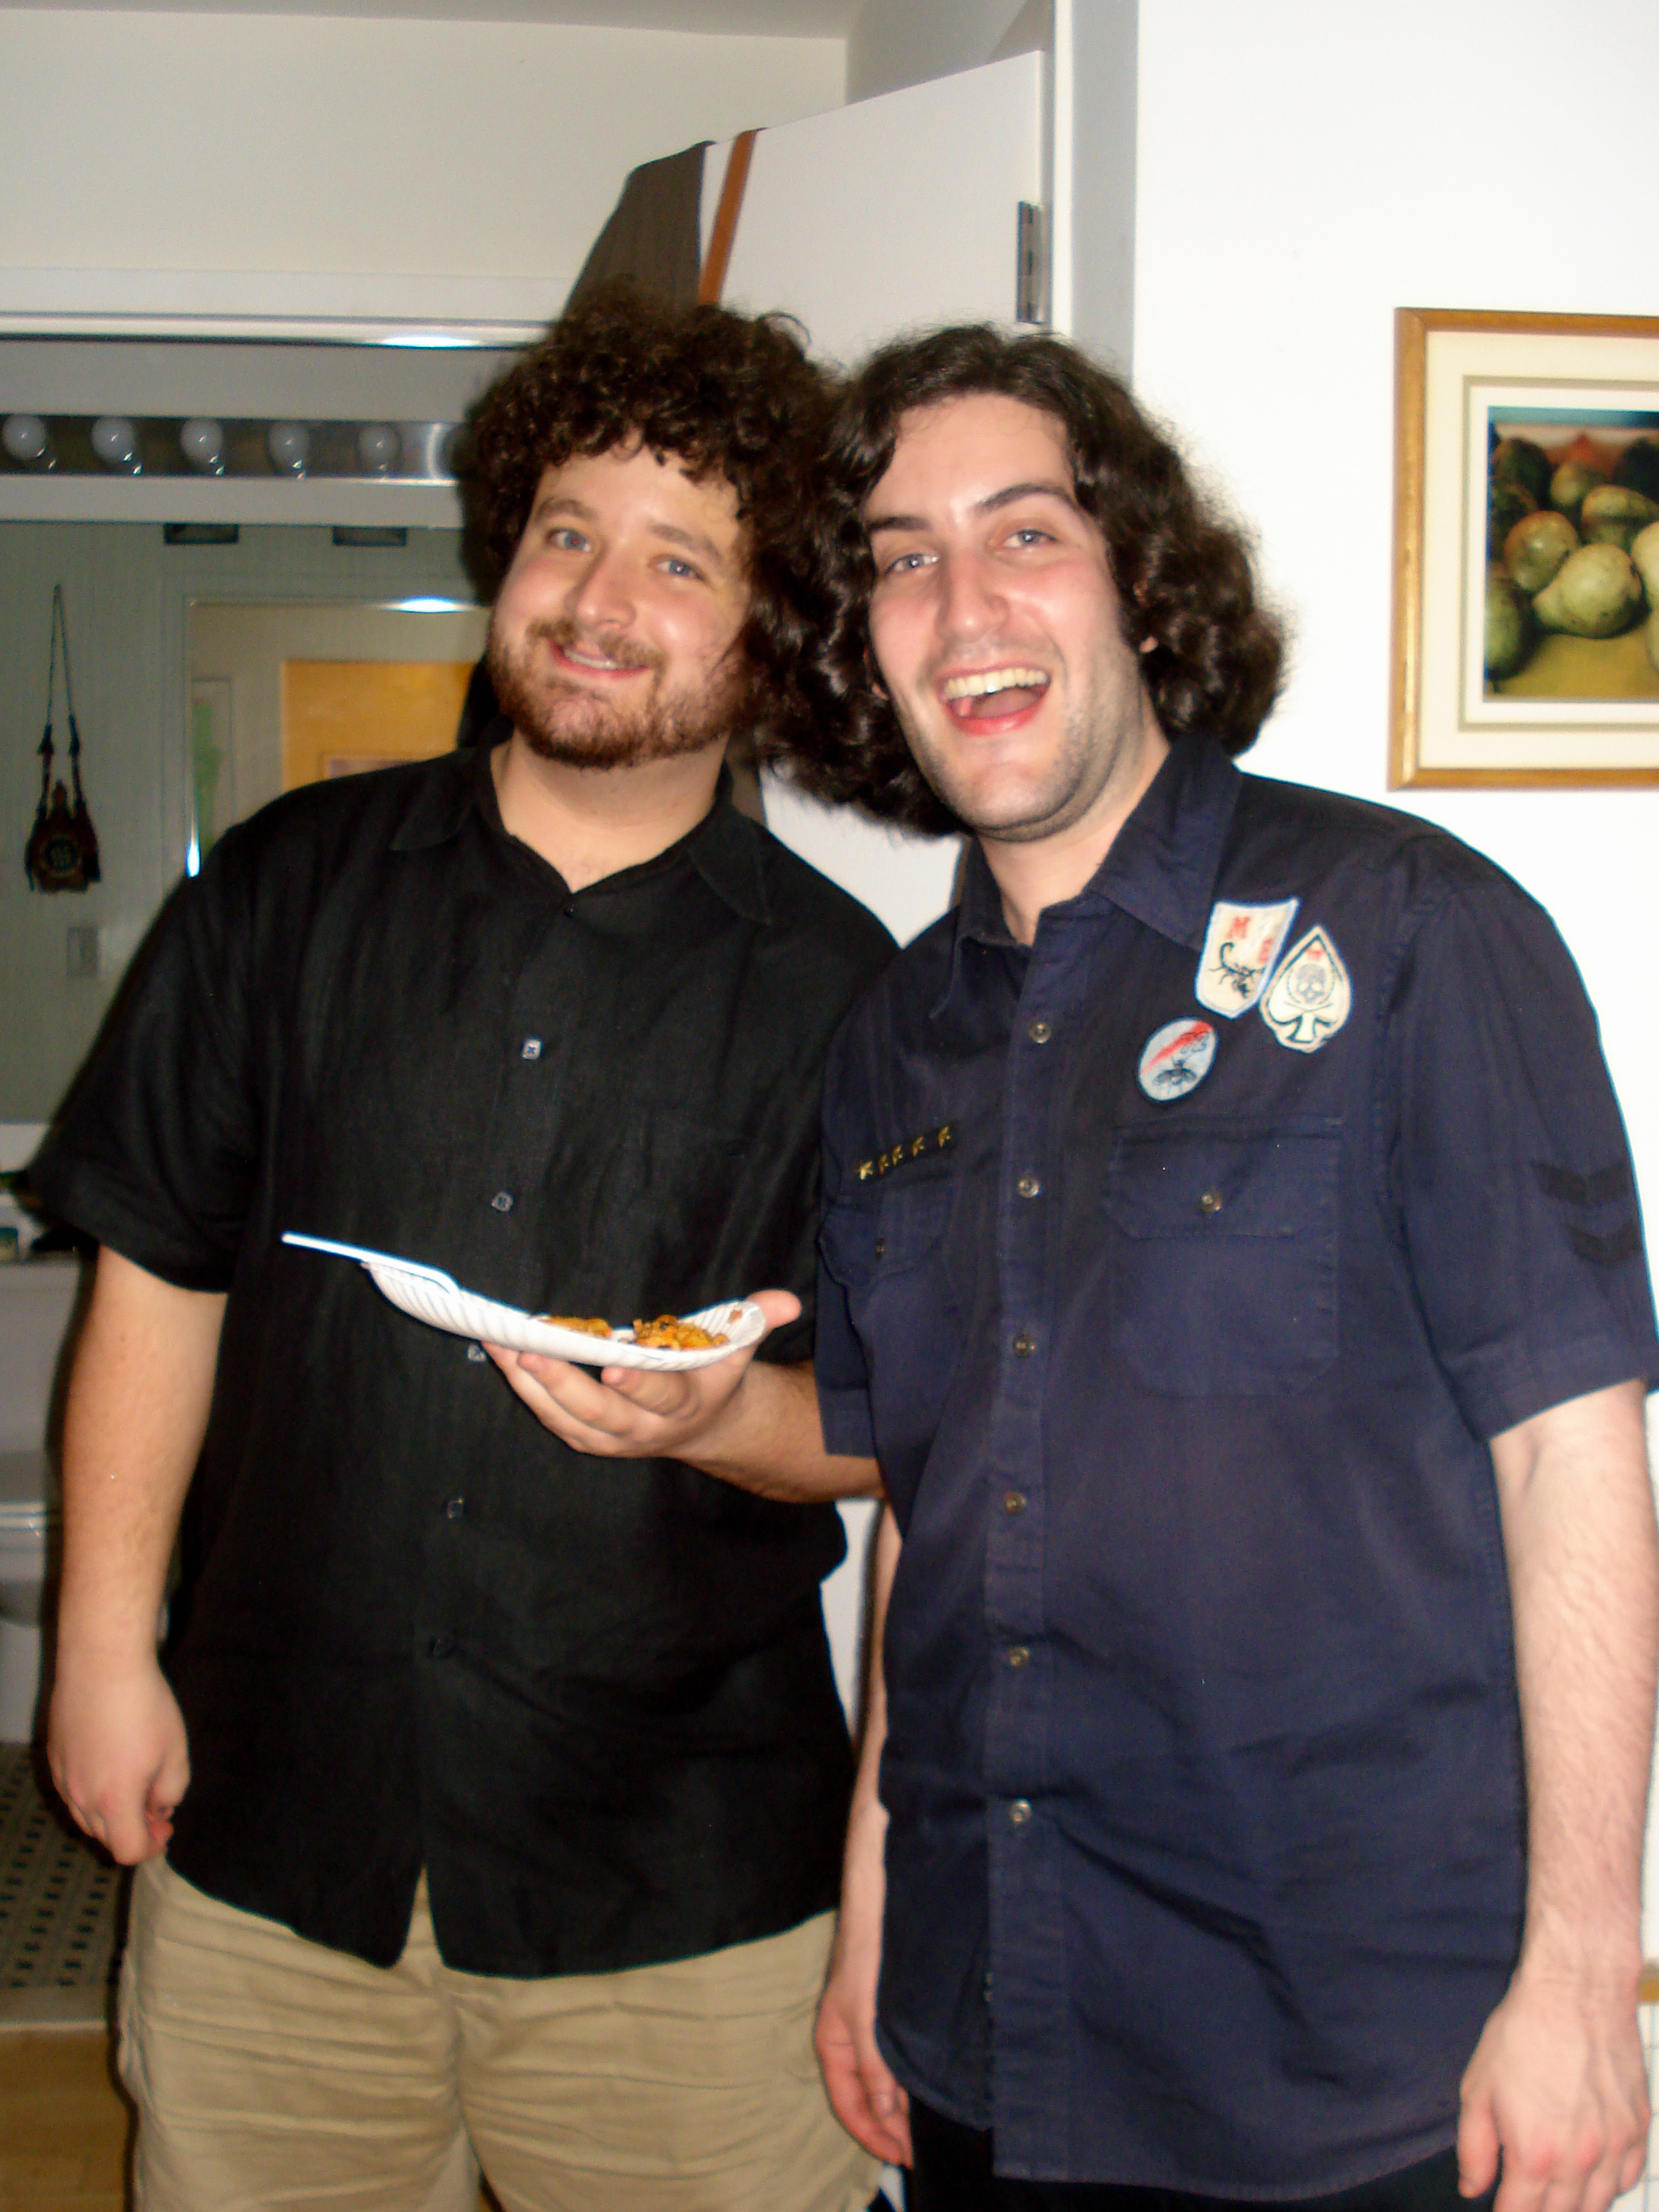 Eric, the creator of the Battlestar Galatica musical, and Phil, with a plate of baked ziti.